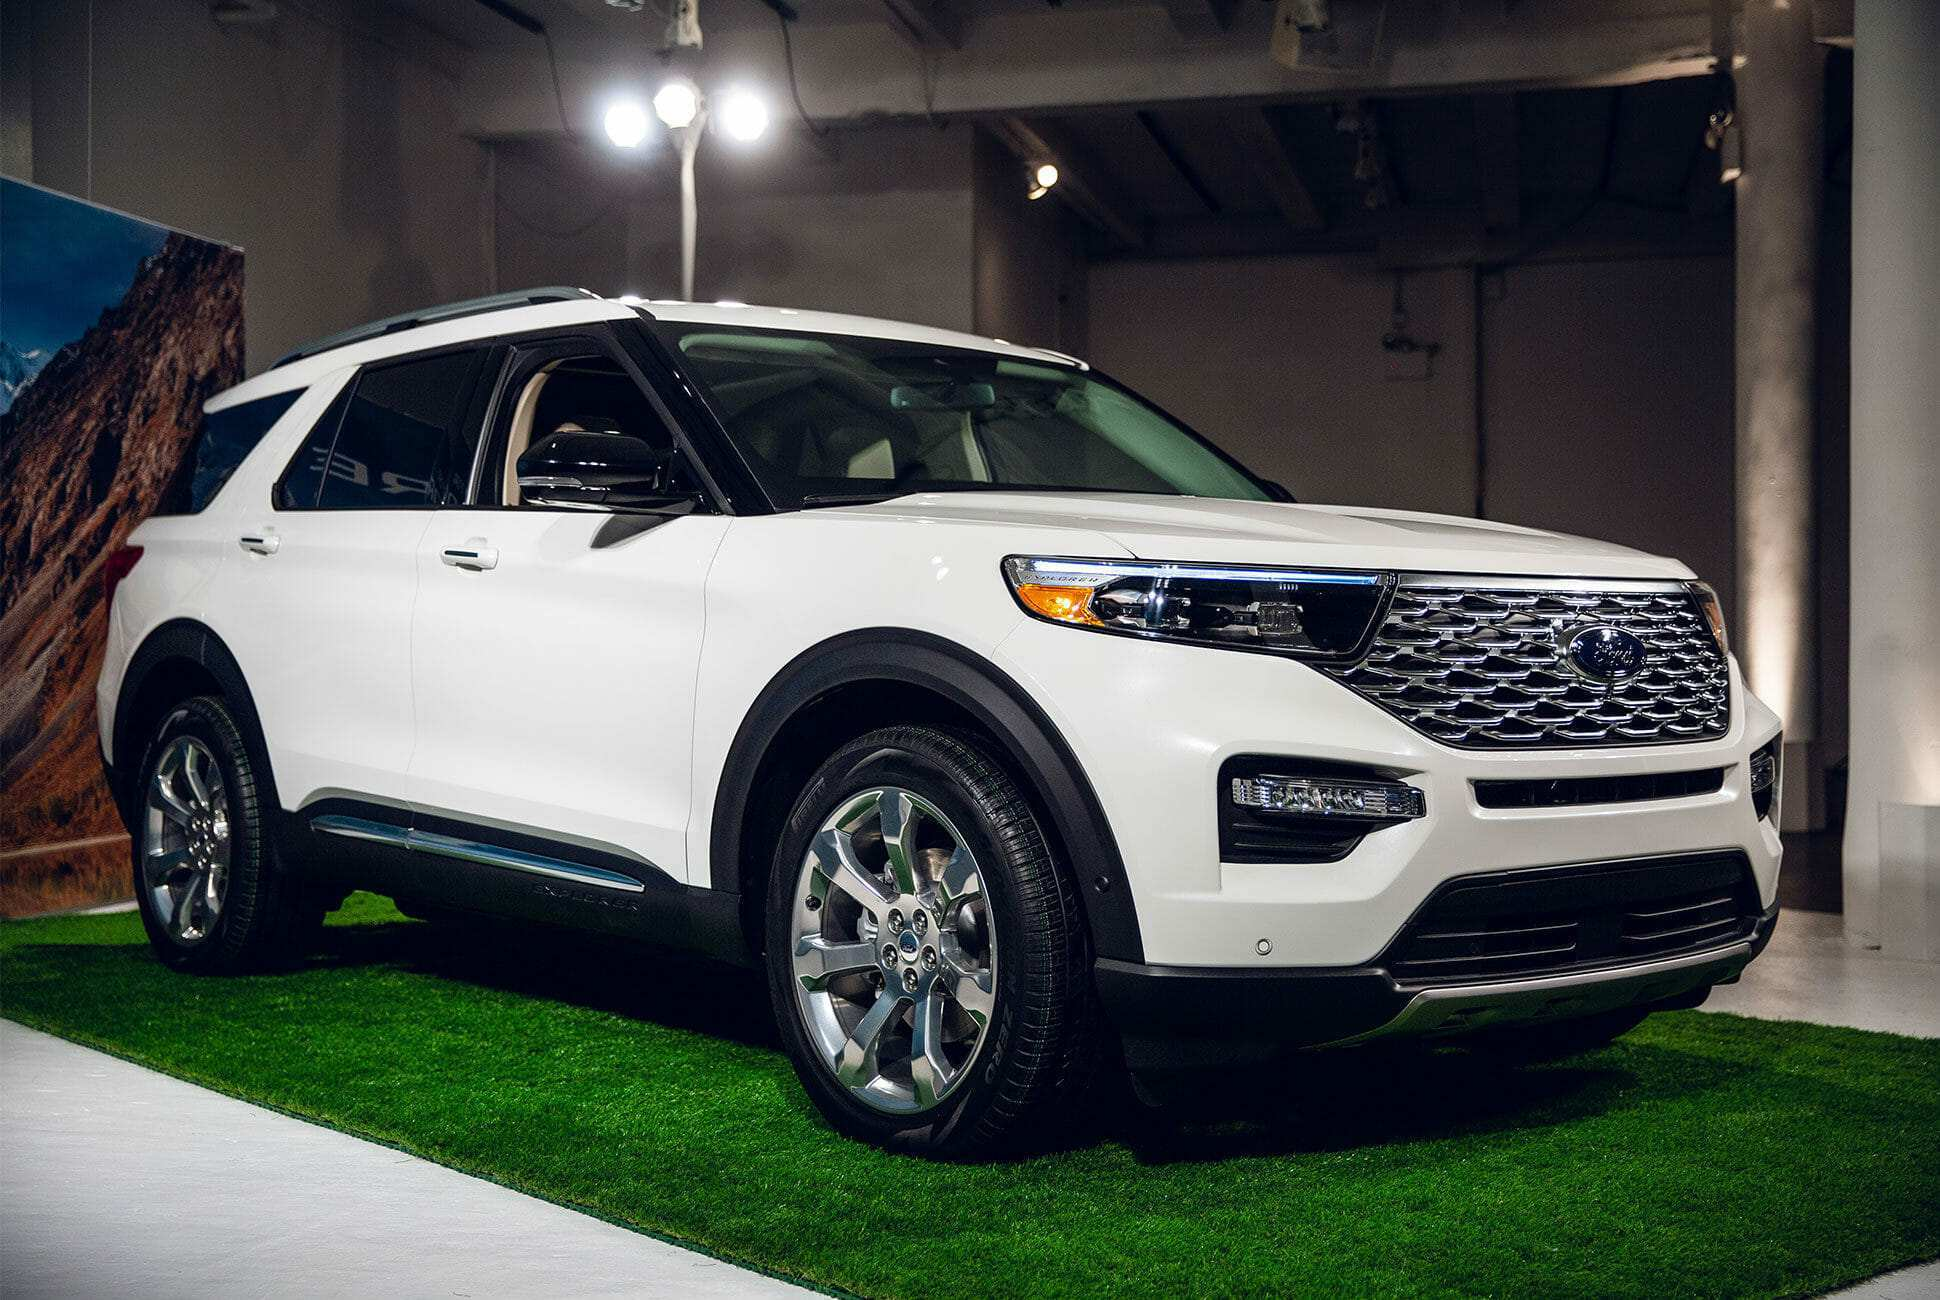 22 New 2020 Ford Explorer Build And Price Redesign with 2020 Ford Explorer Build And Price